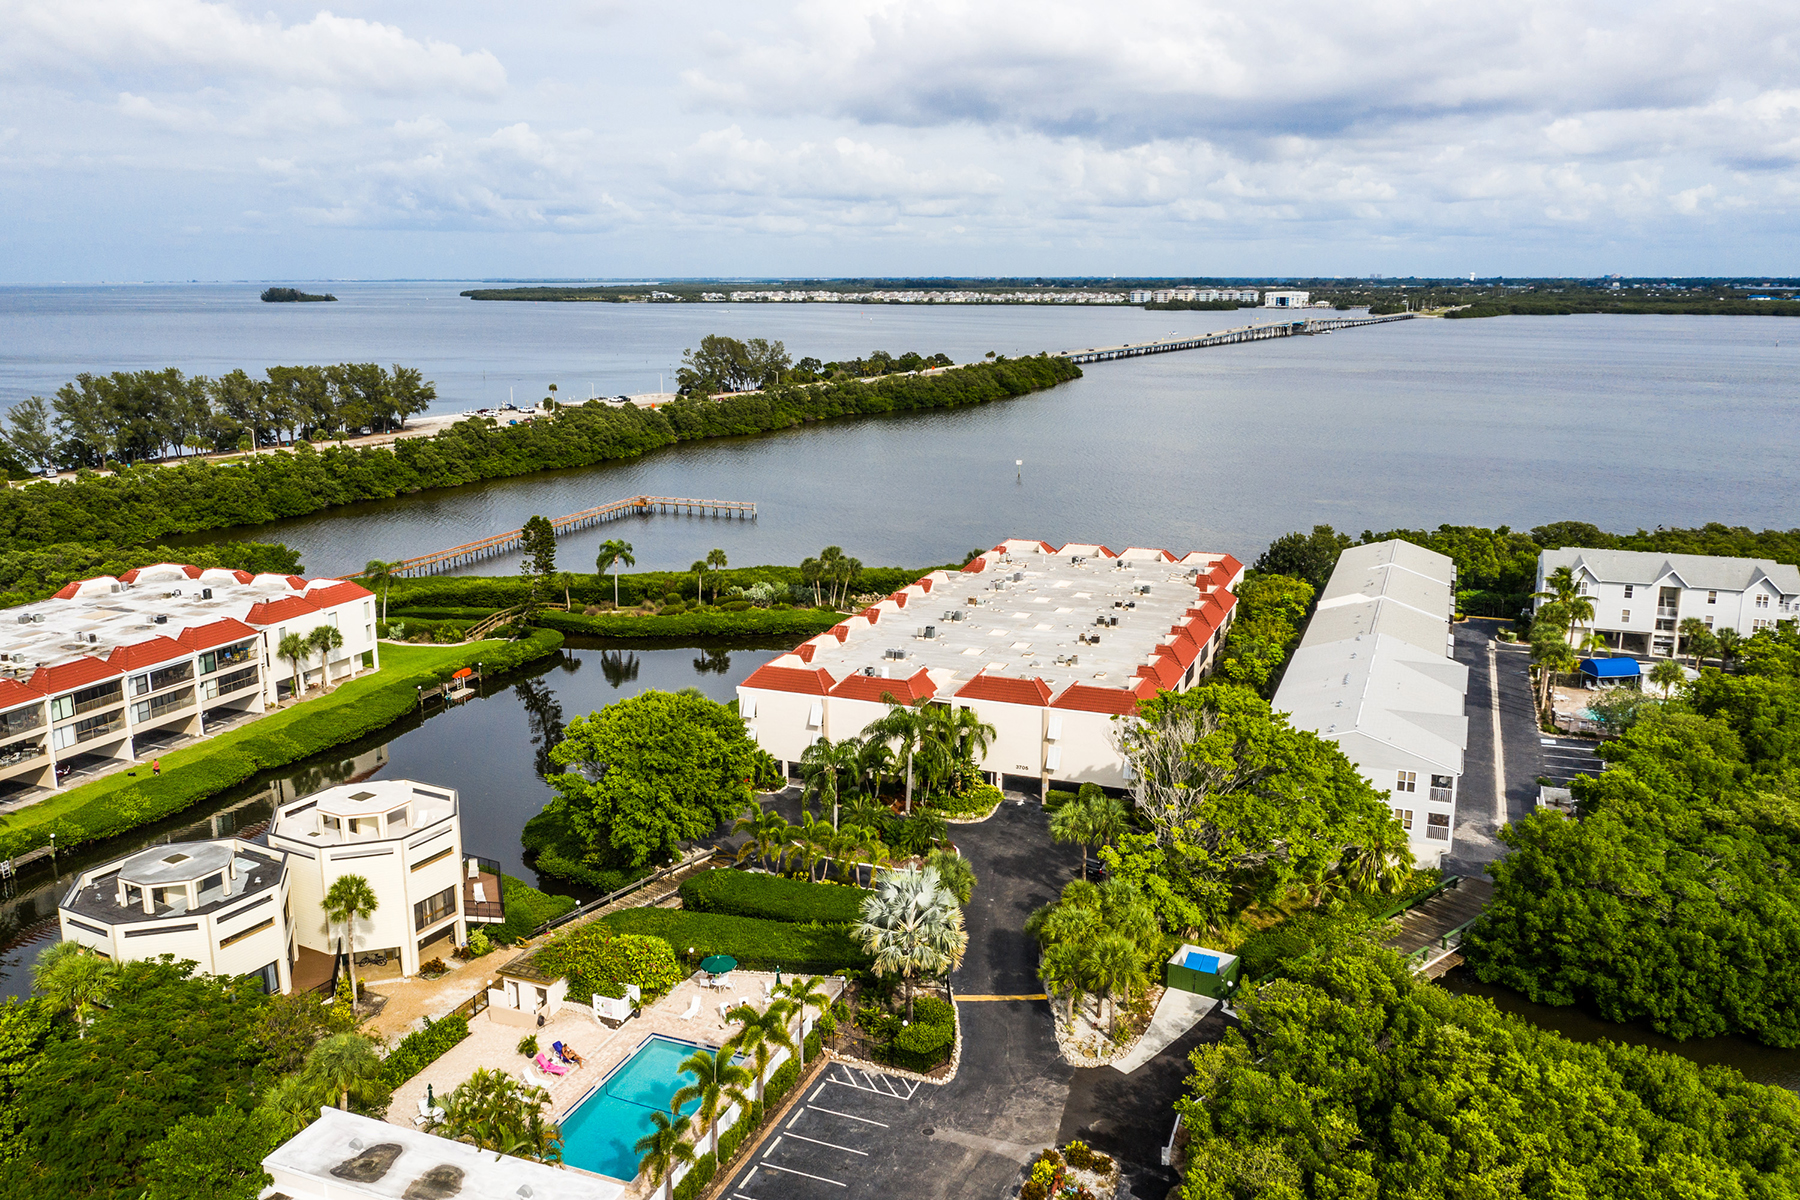 Single Family Homes for Sale at SUNBOW BAY 3705 E Bay Dr , 115, Holmes Beach, Florida 34217 United States